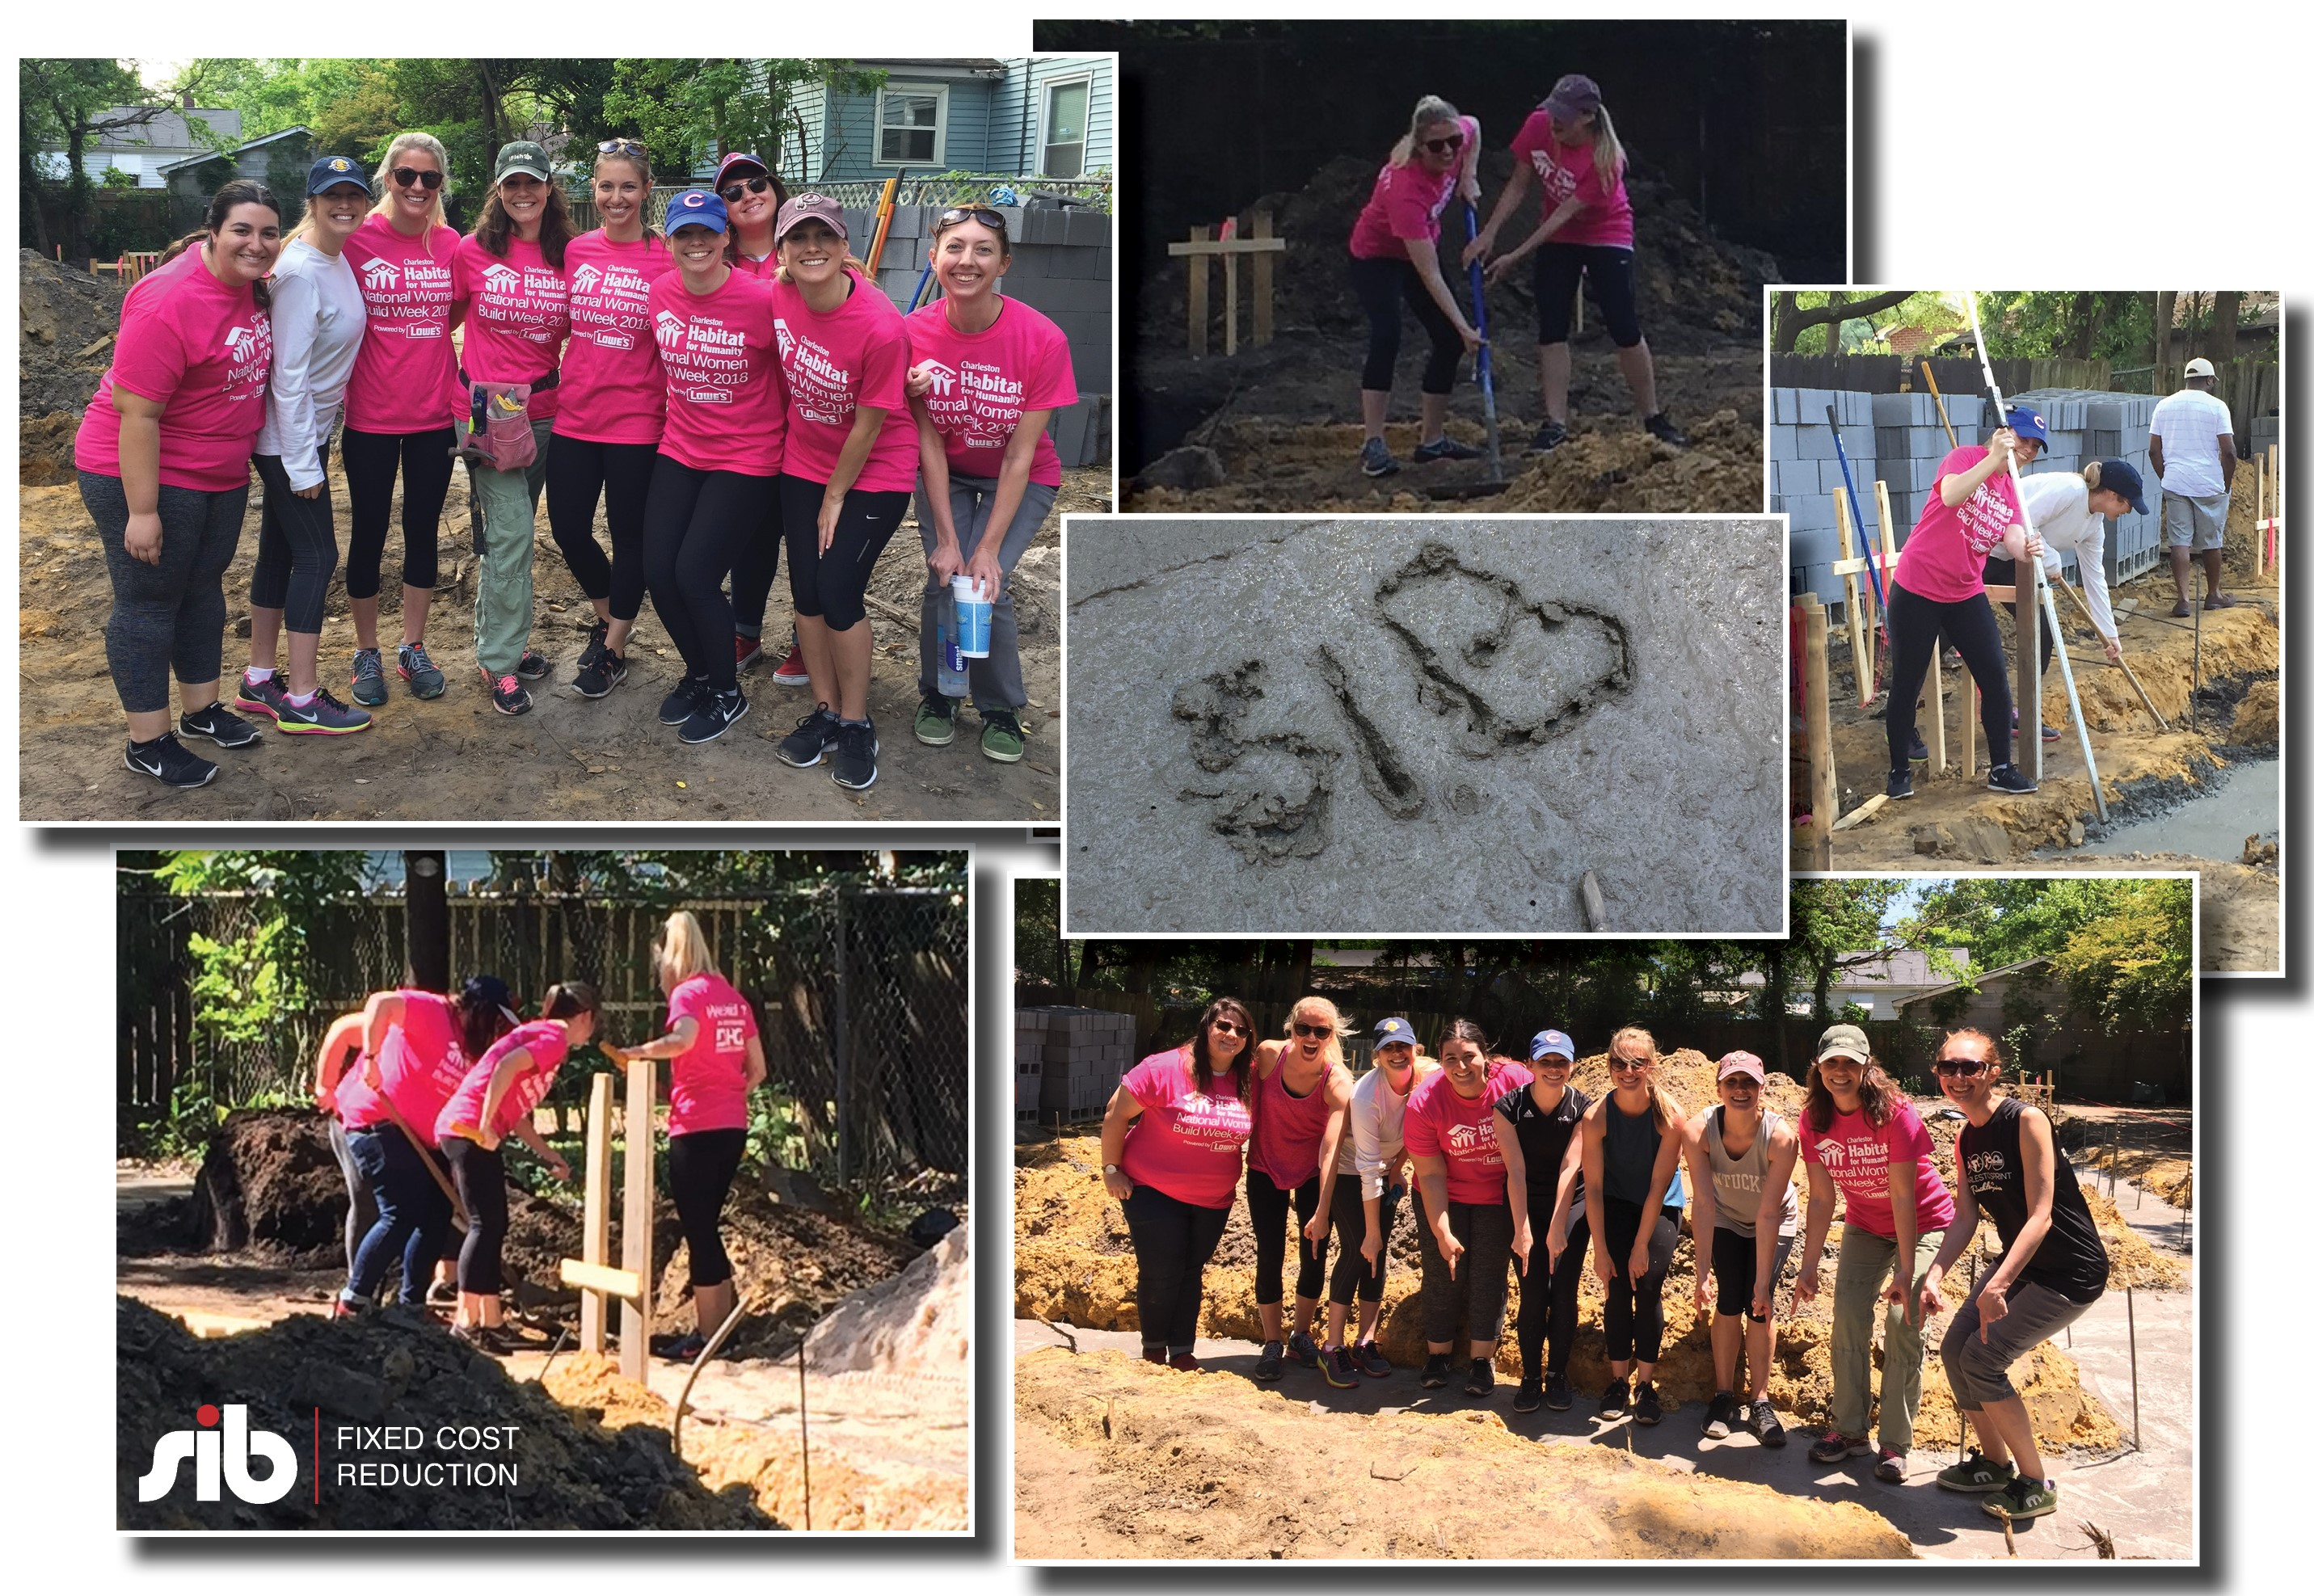 SIB Fixed Cost Reduction - Habitat for Humanity National Women Build Week 2018